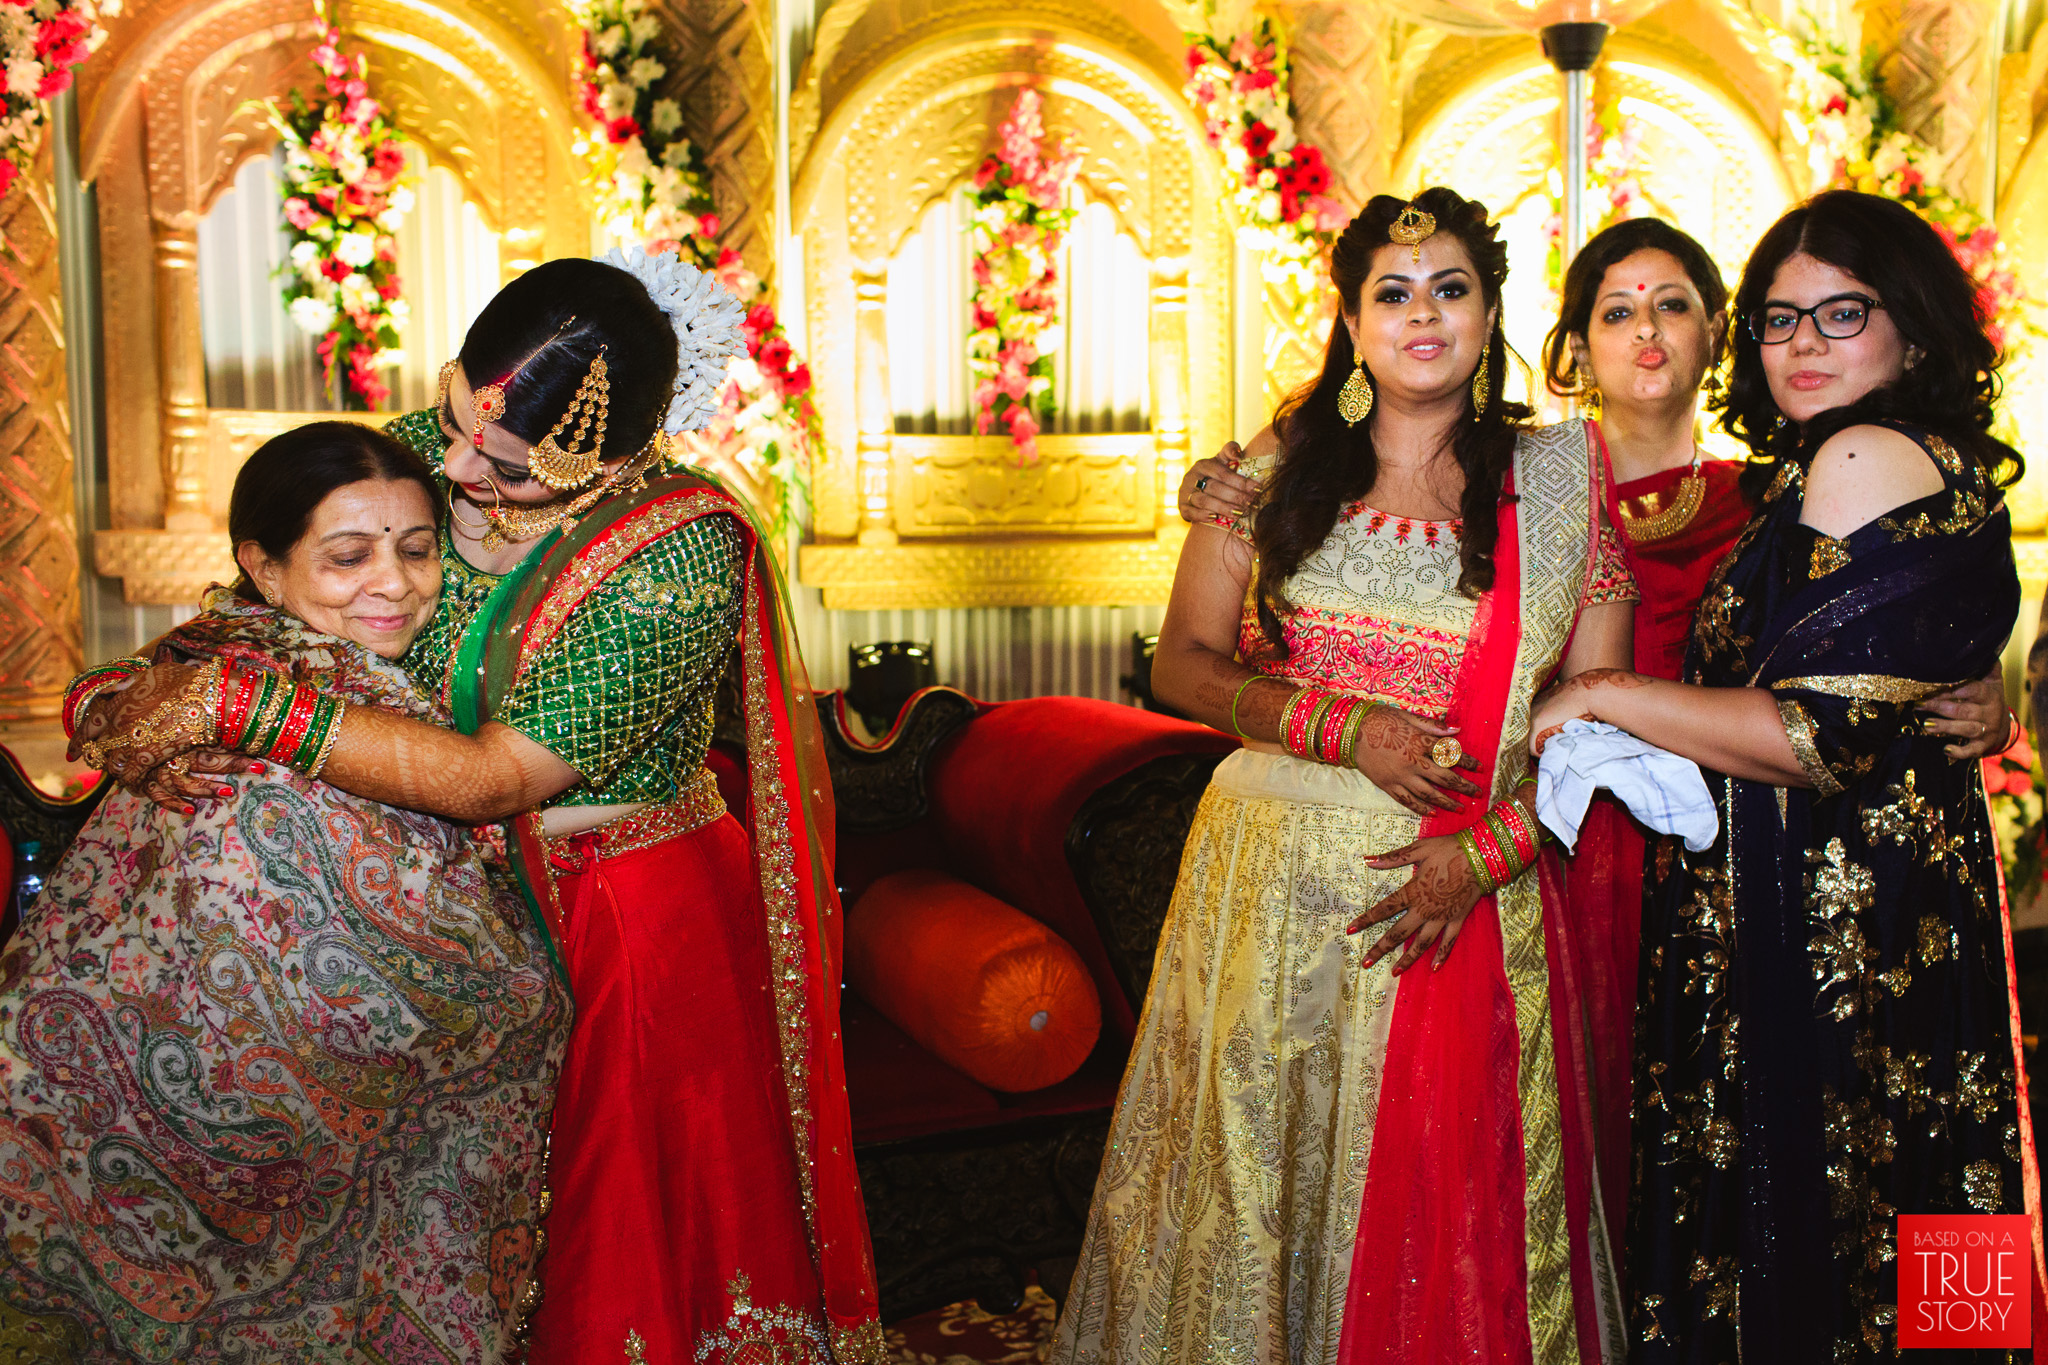 candid-photography-north-indian-wedding-0003.jpg